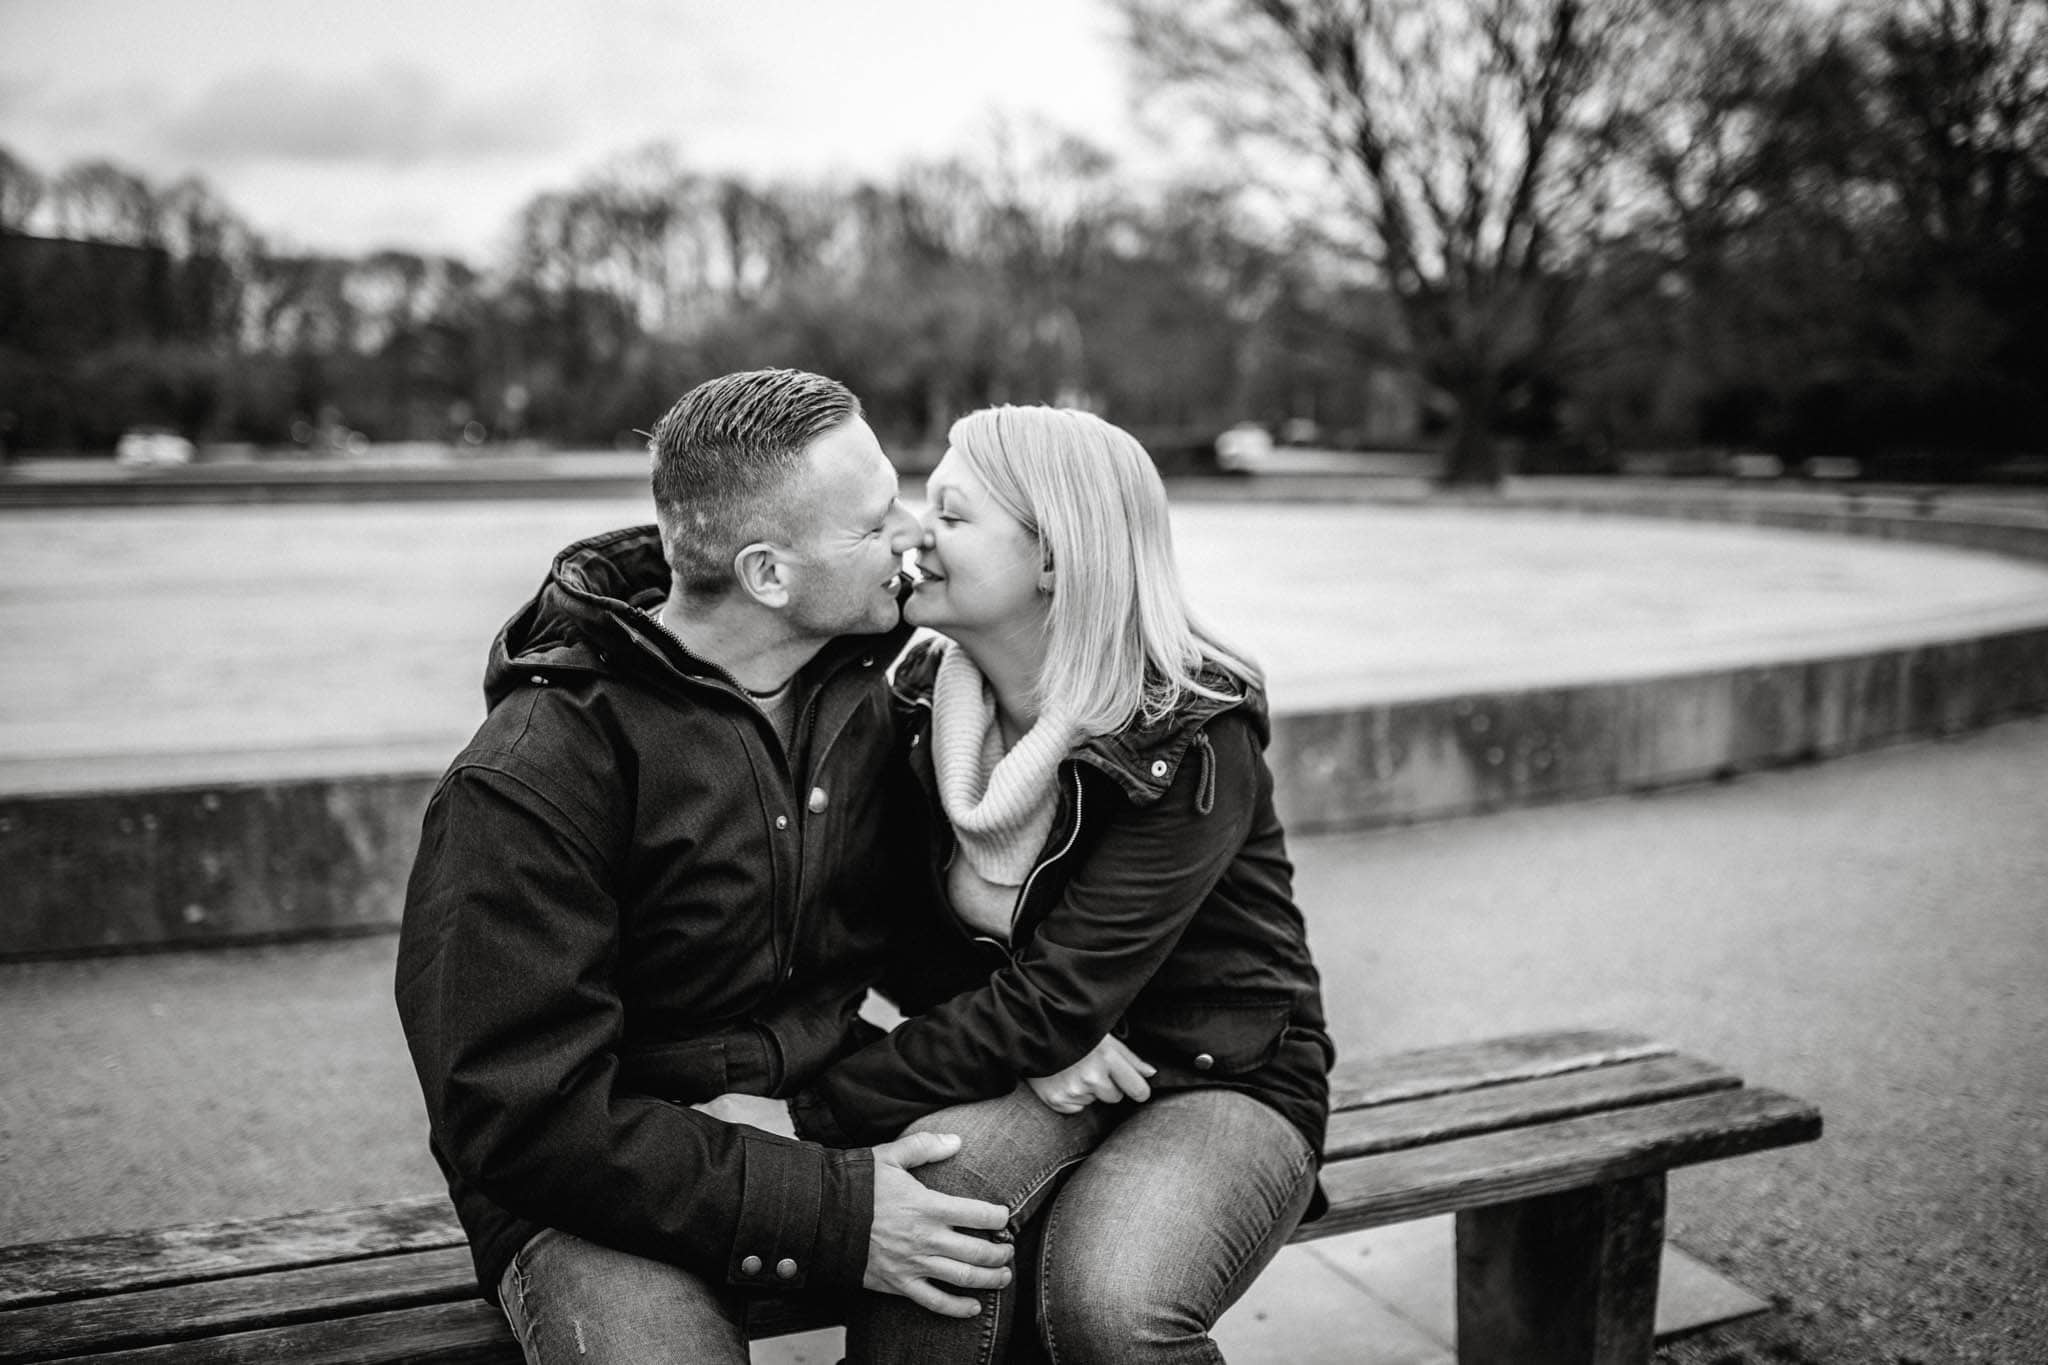 Engagementshooting, Hochzeitsfieber by Photo-Schomburg, Pärchenshoot, Hamburg, Elbe, Hamburger Hafen, Hochzeitsfotograf, Wedding, Coupleshoot, Hochzeitsfotografie-5-2